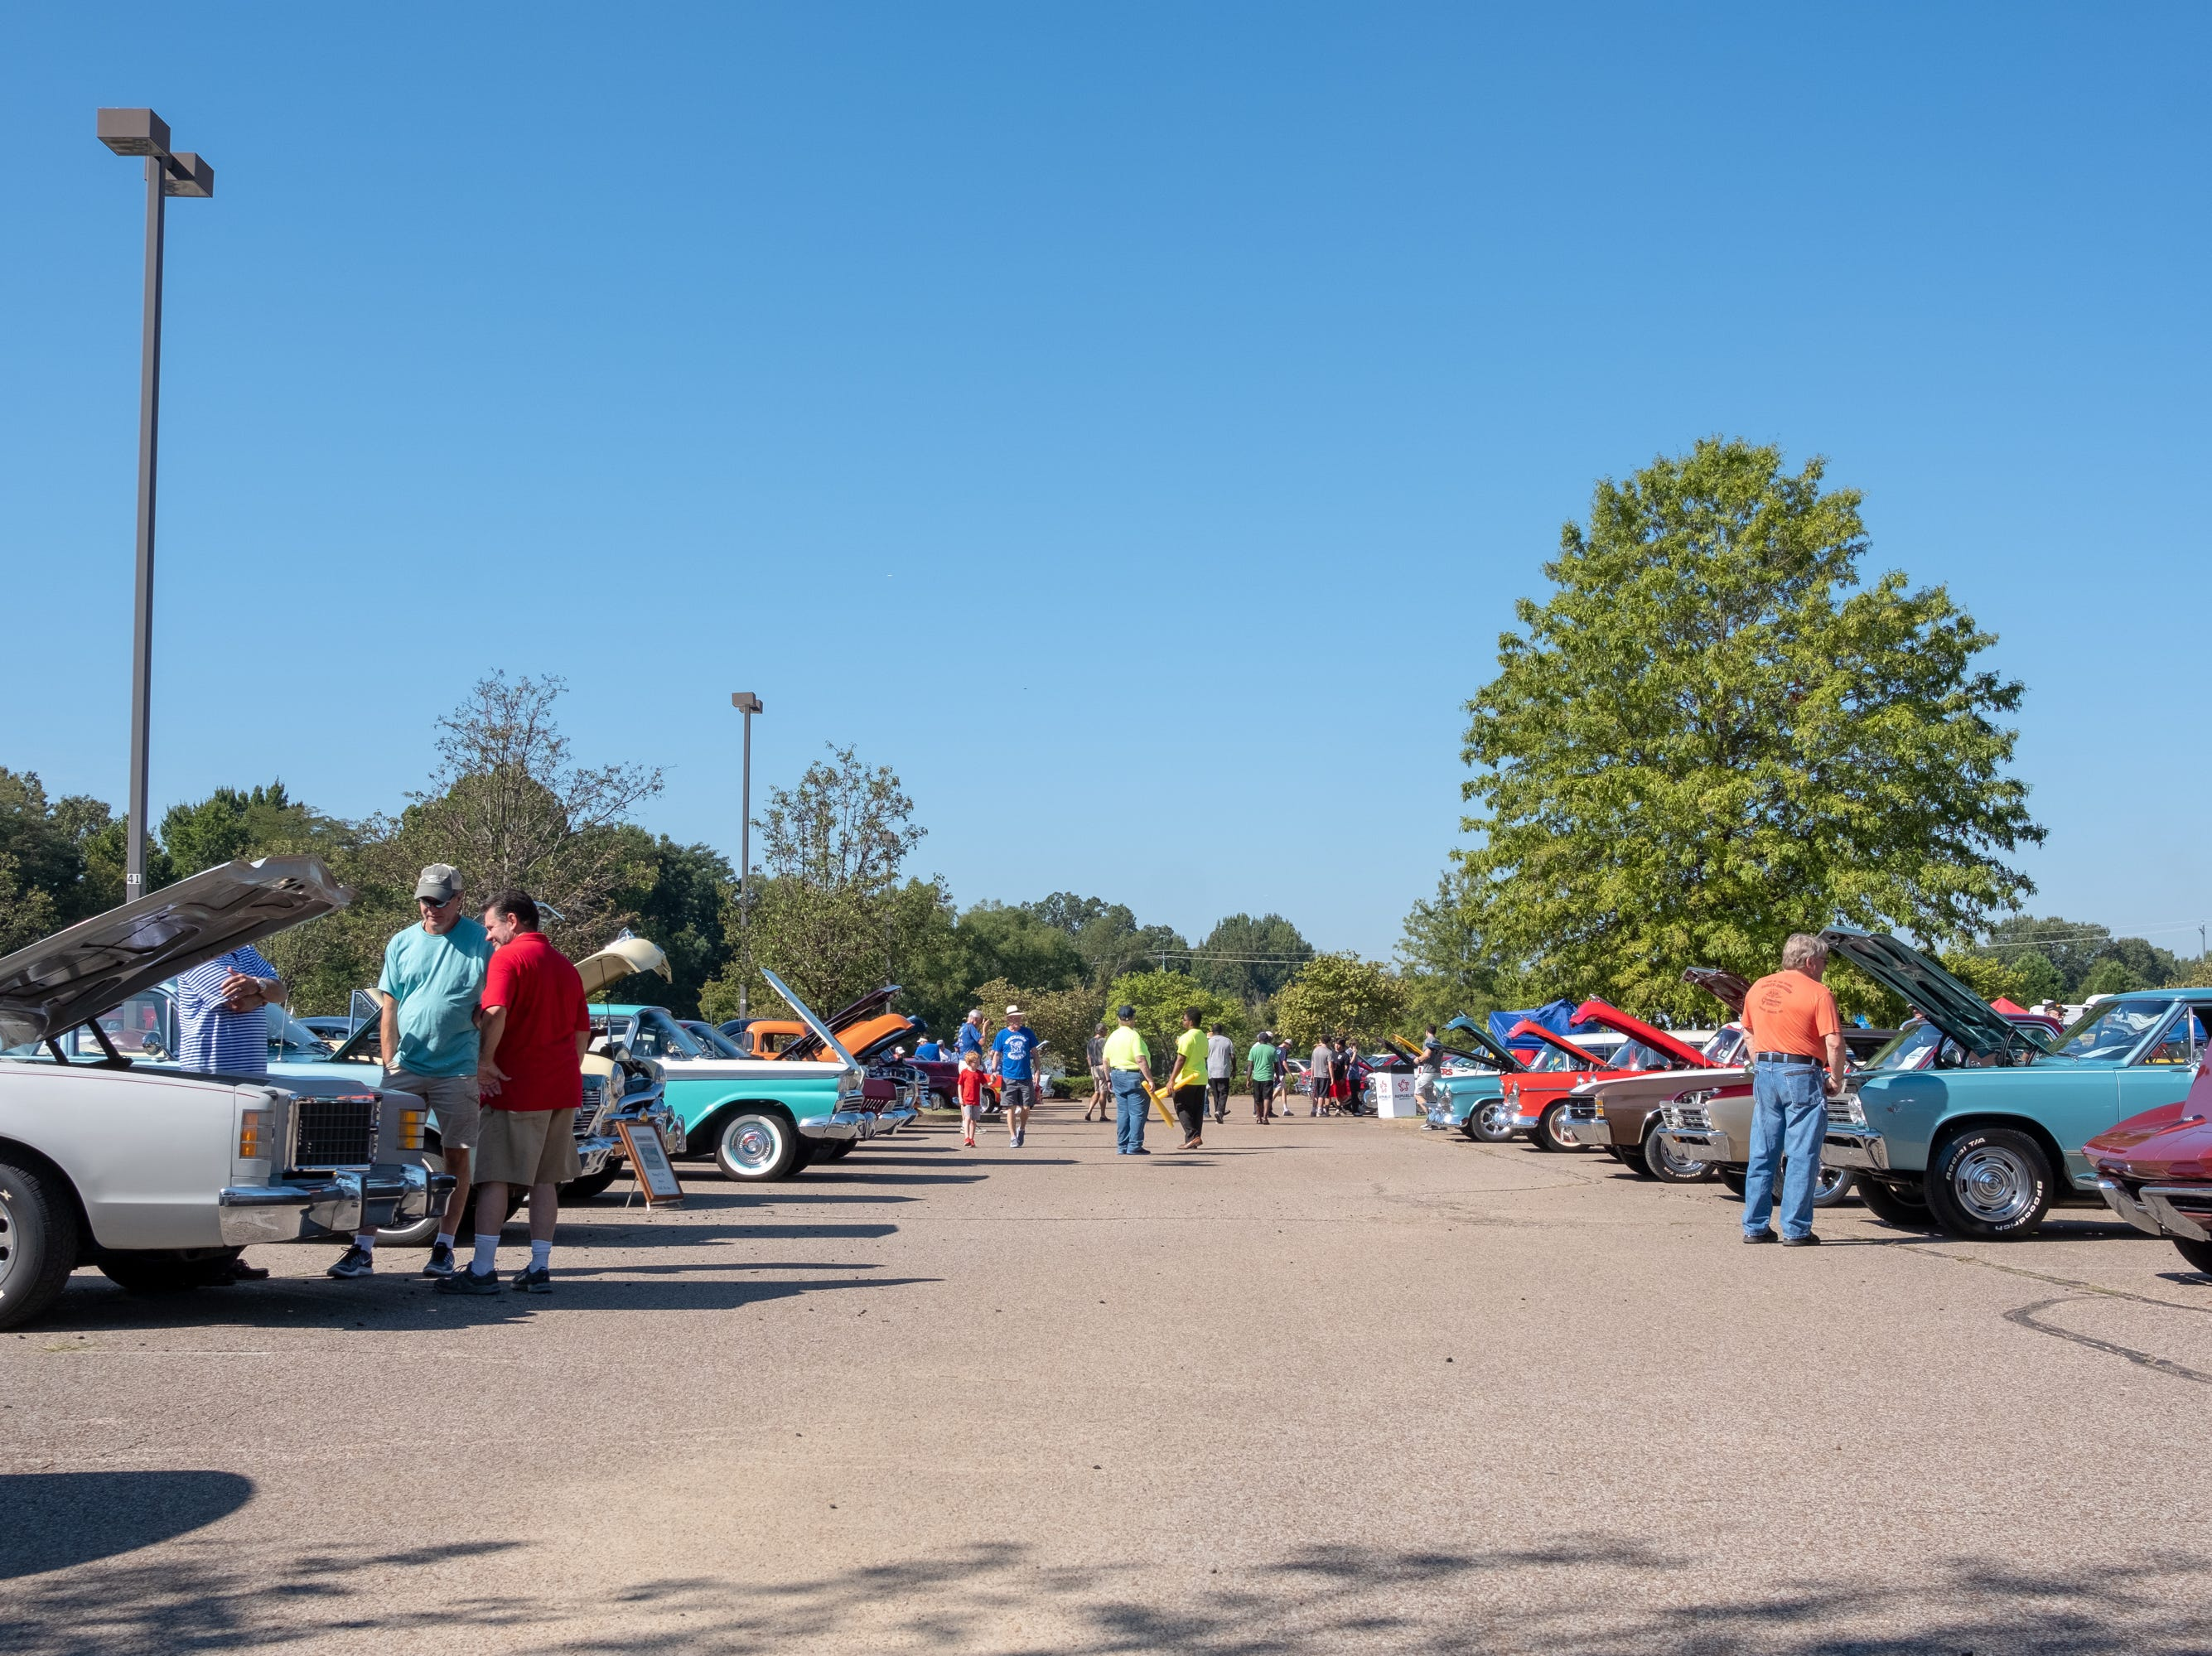 People gather to admire vehicles at the Collierville Classic Car Show on Saturday morning, Sept. 15, 2018.